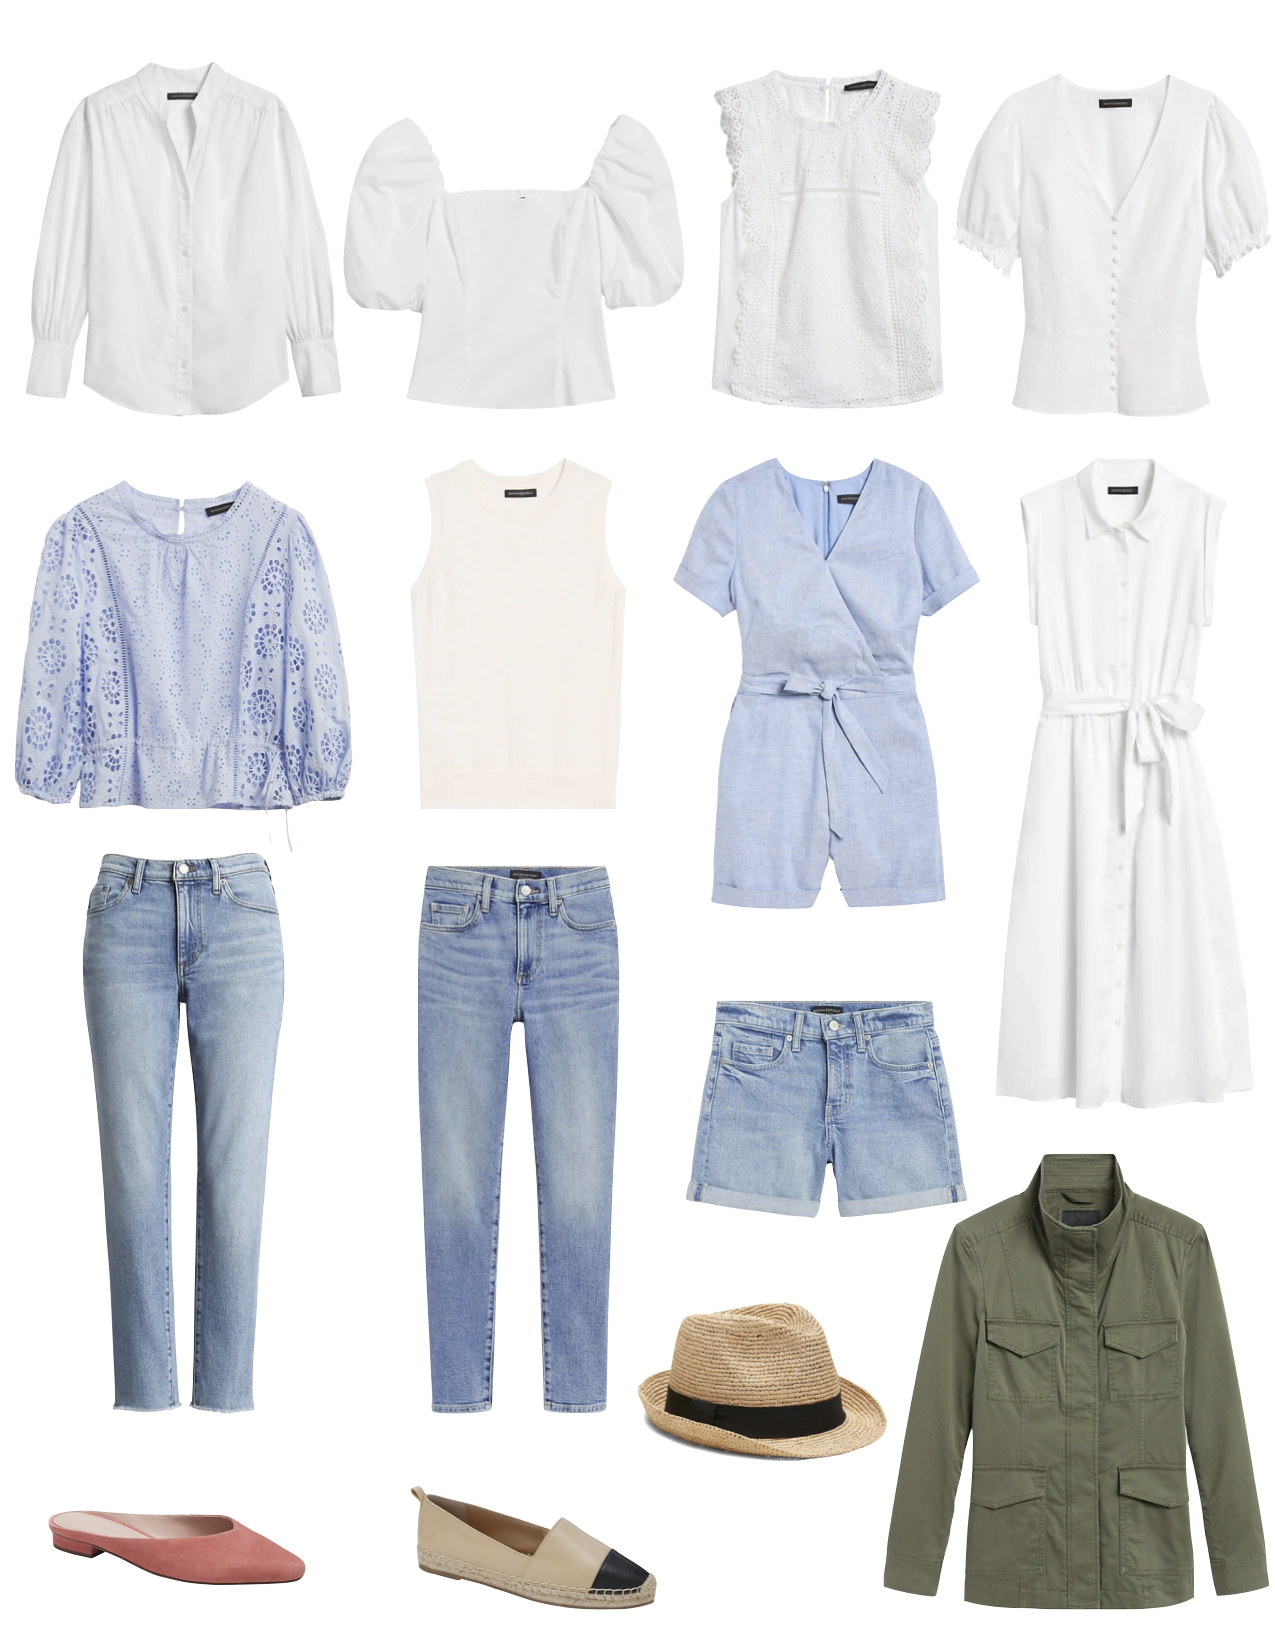 Banana Republic Friends & Family Sale Spring Picks